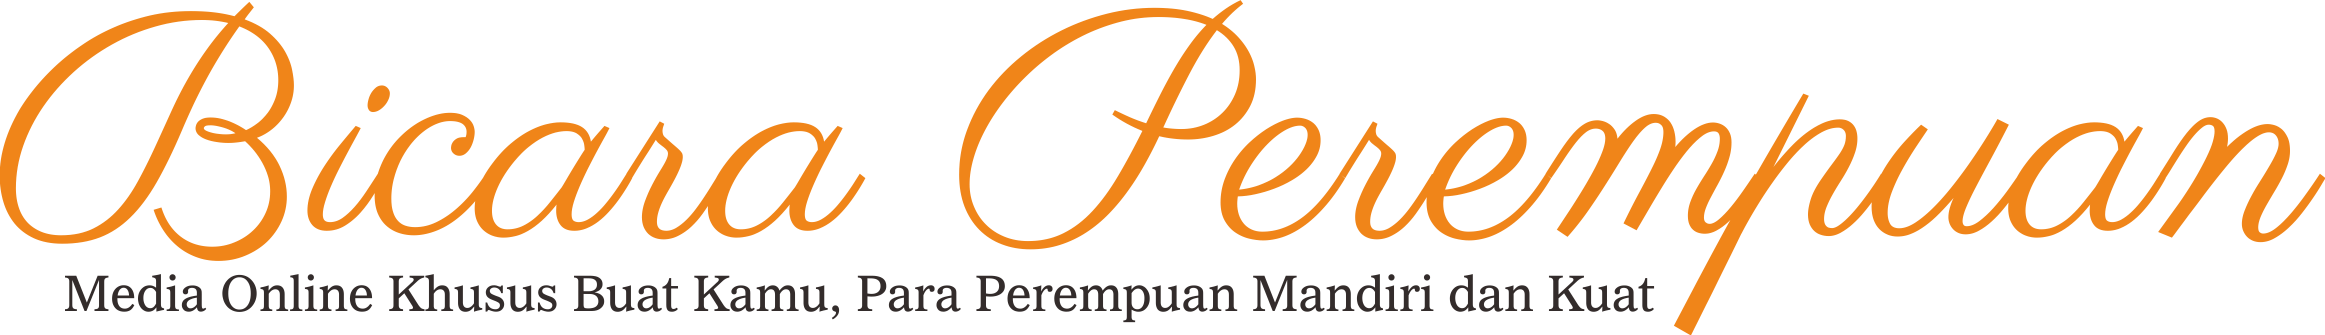 Bicara Perempuan